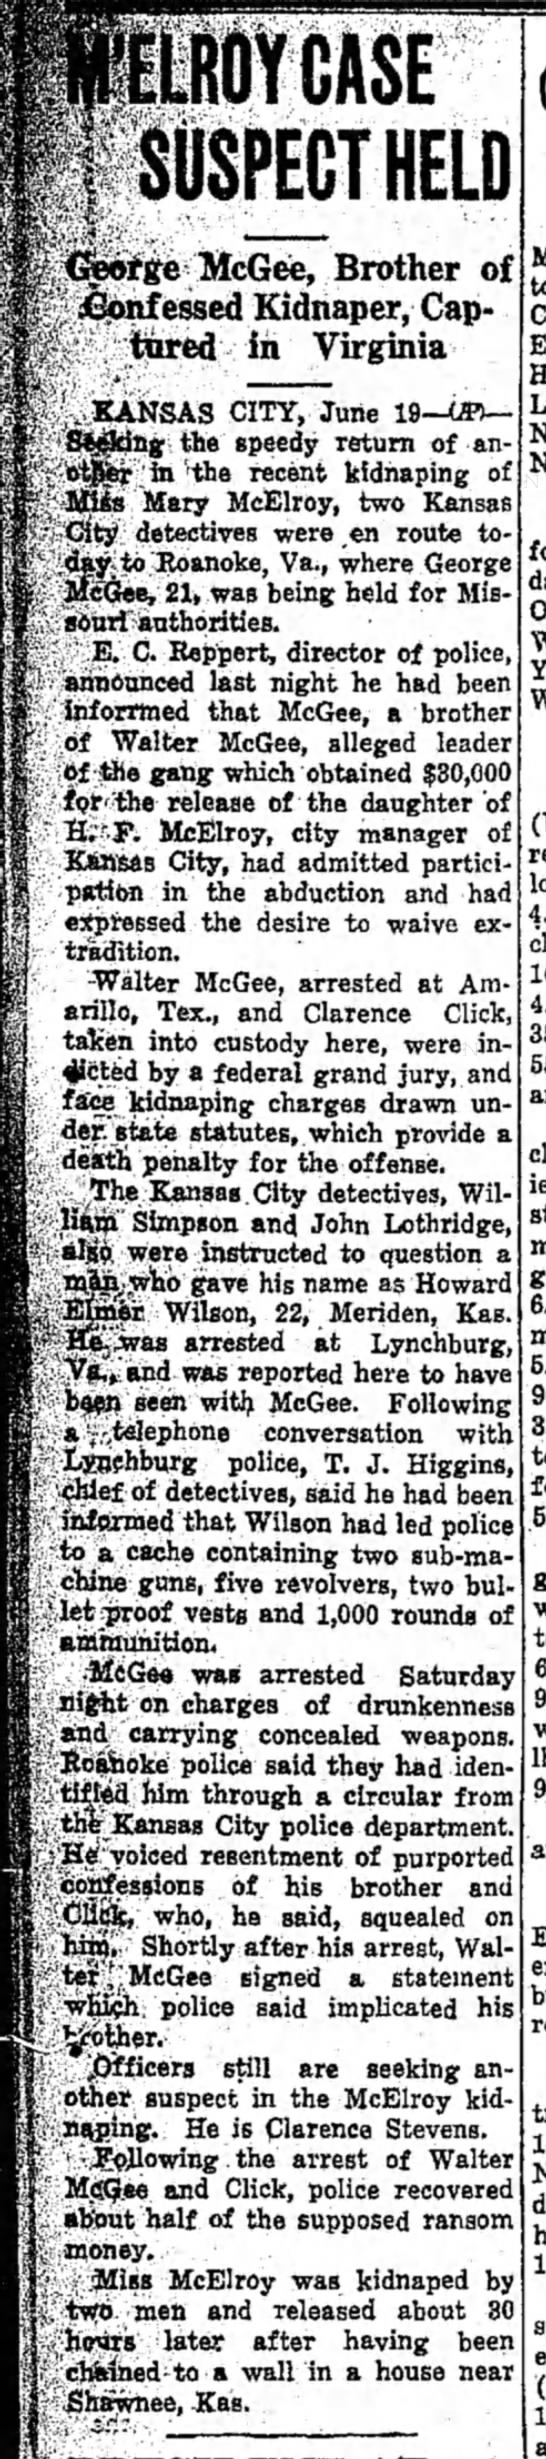 - .ROY CASE SUSPECT HELD >rge McGee, Brother of...